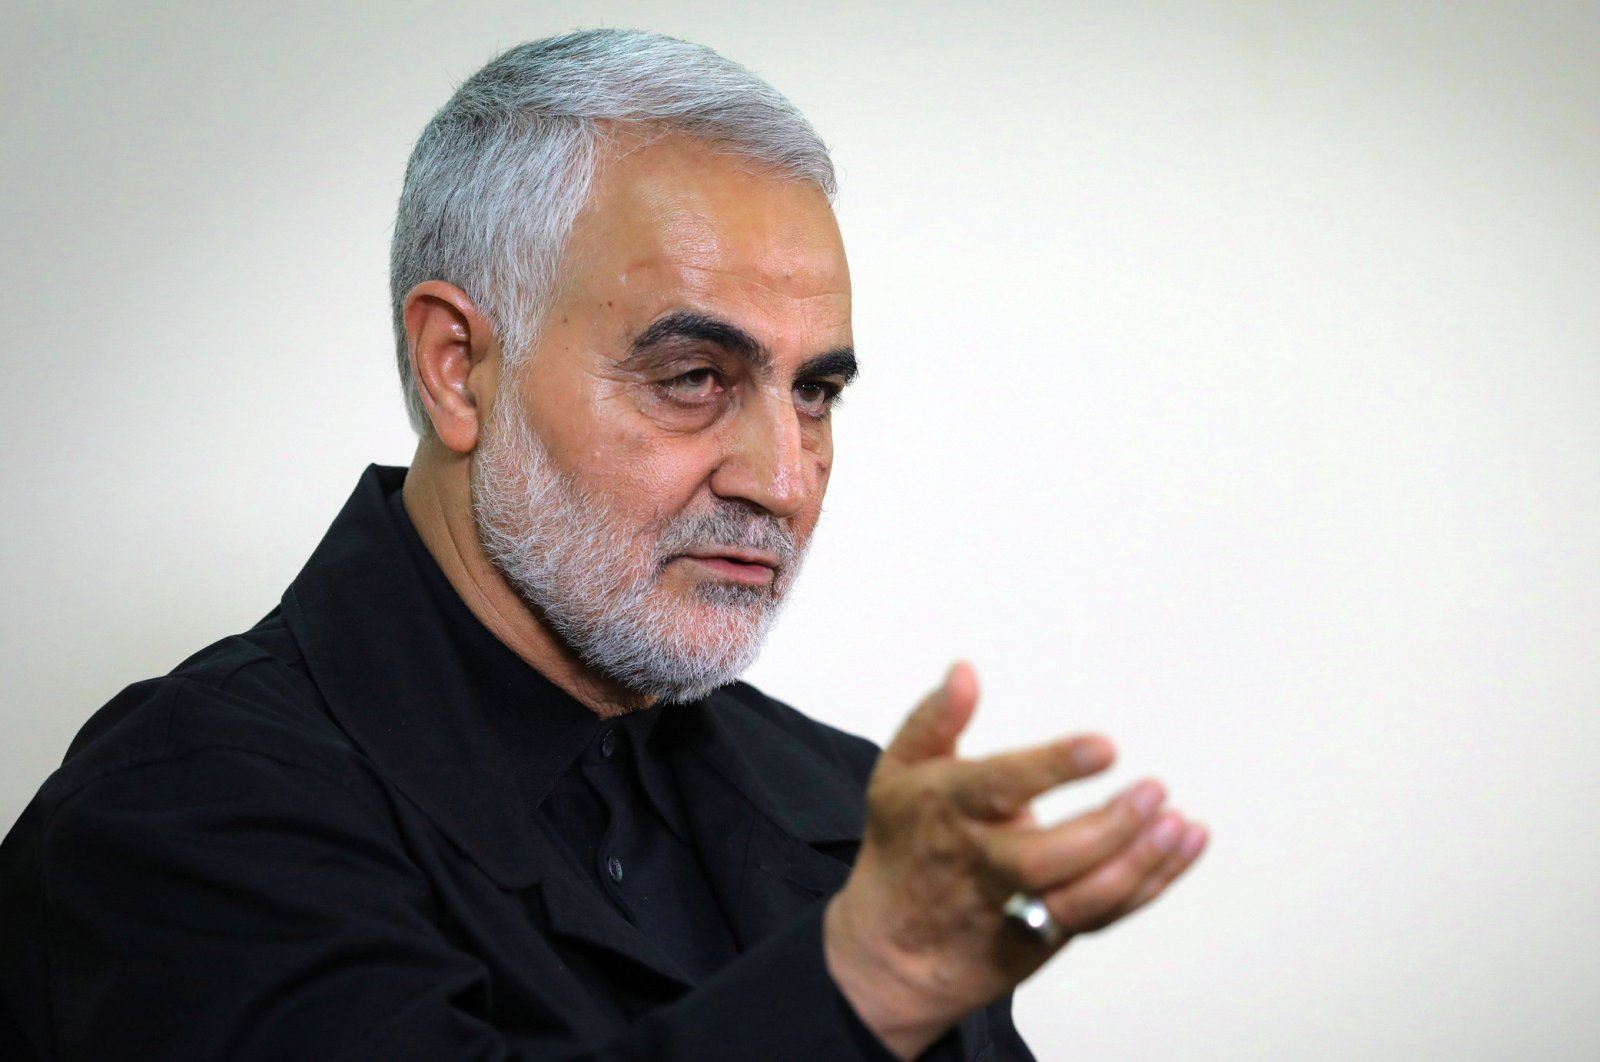 Qasem Soleimani, Iranian Revolutionary Guards Corps (IRGC) major general and commander of the Quds Force, speaking during an interview with members of the Iranian leader's bureau in Tehran, Oct. 1, 2019. (AFP Photo/Khamenei.ir)